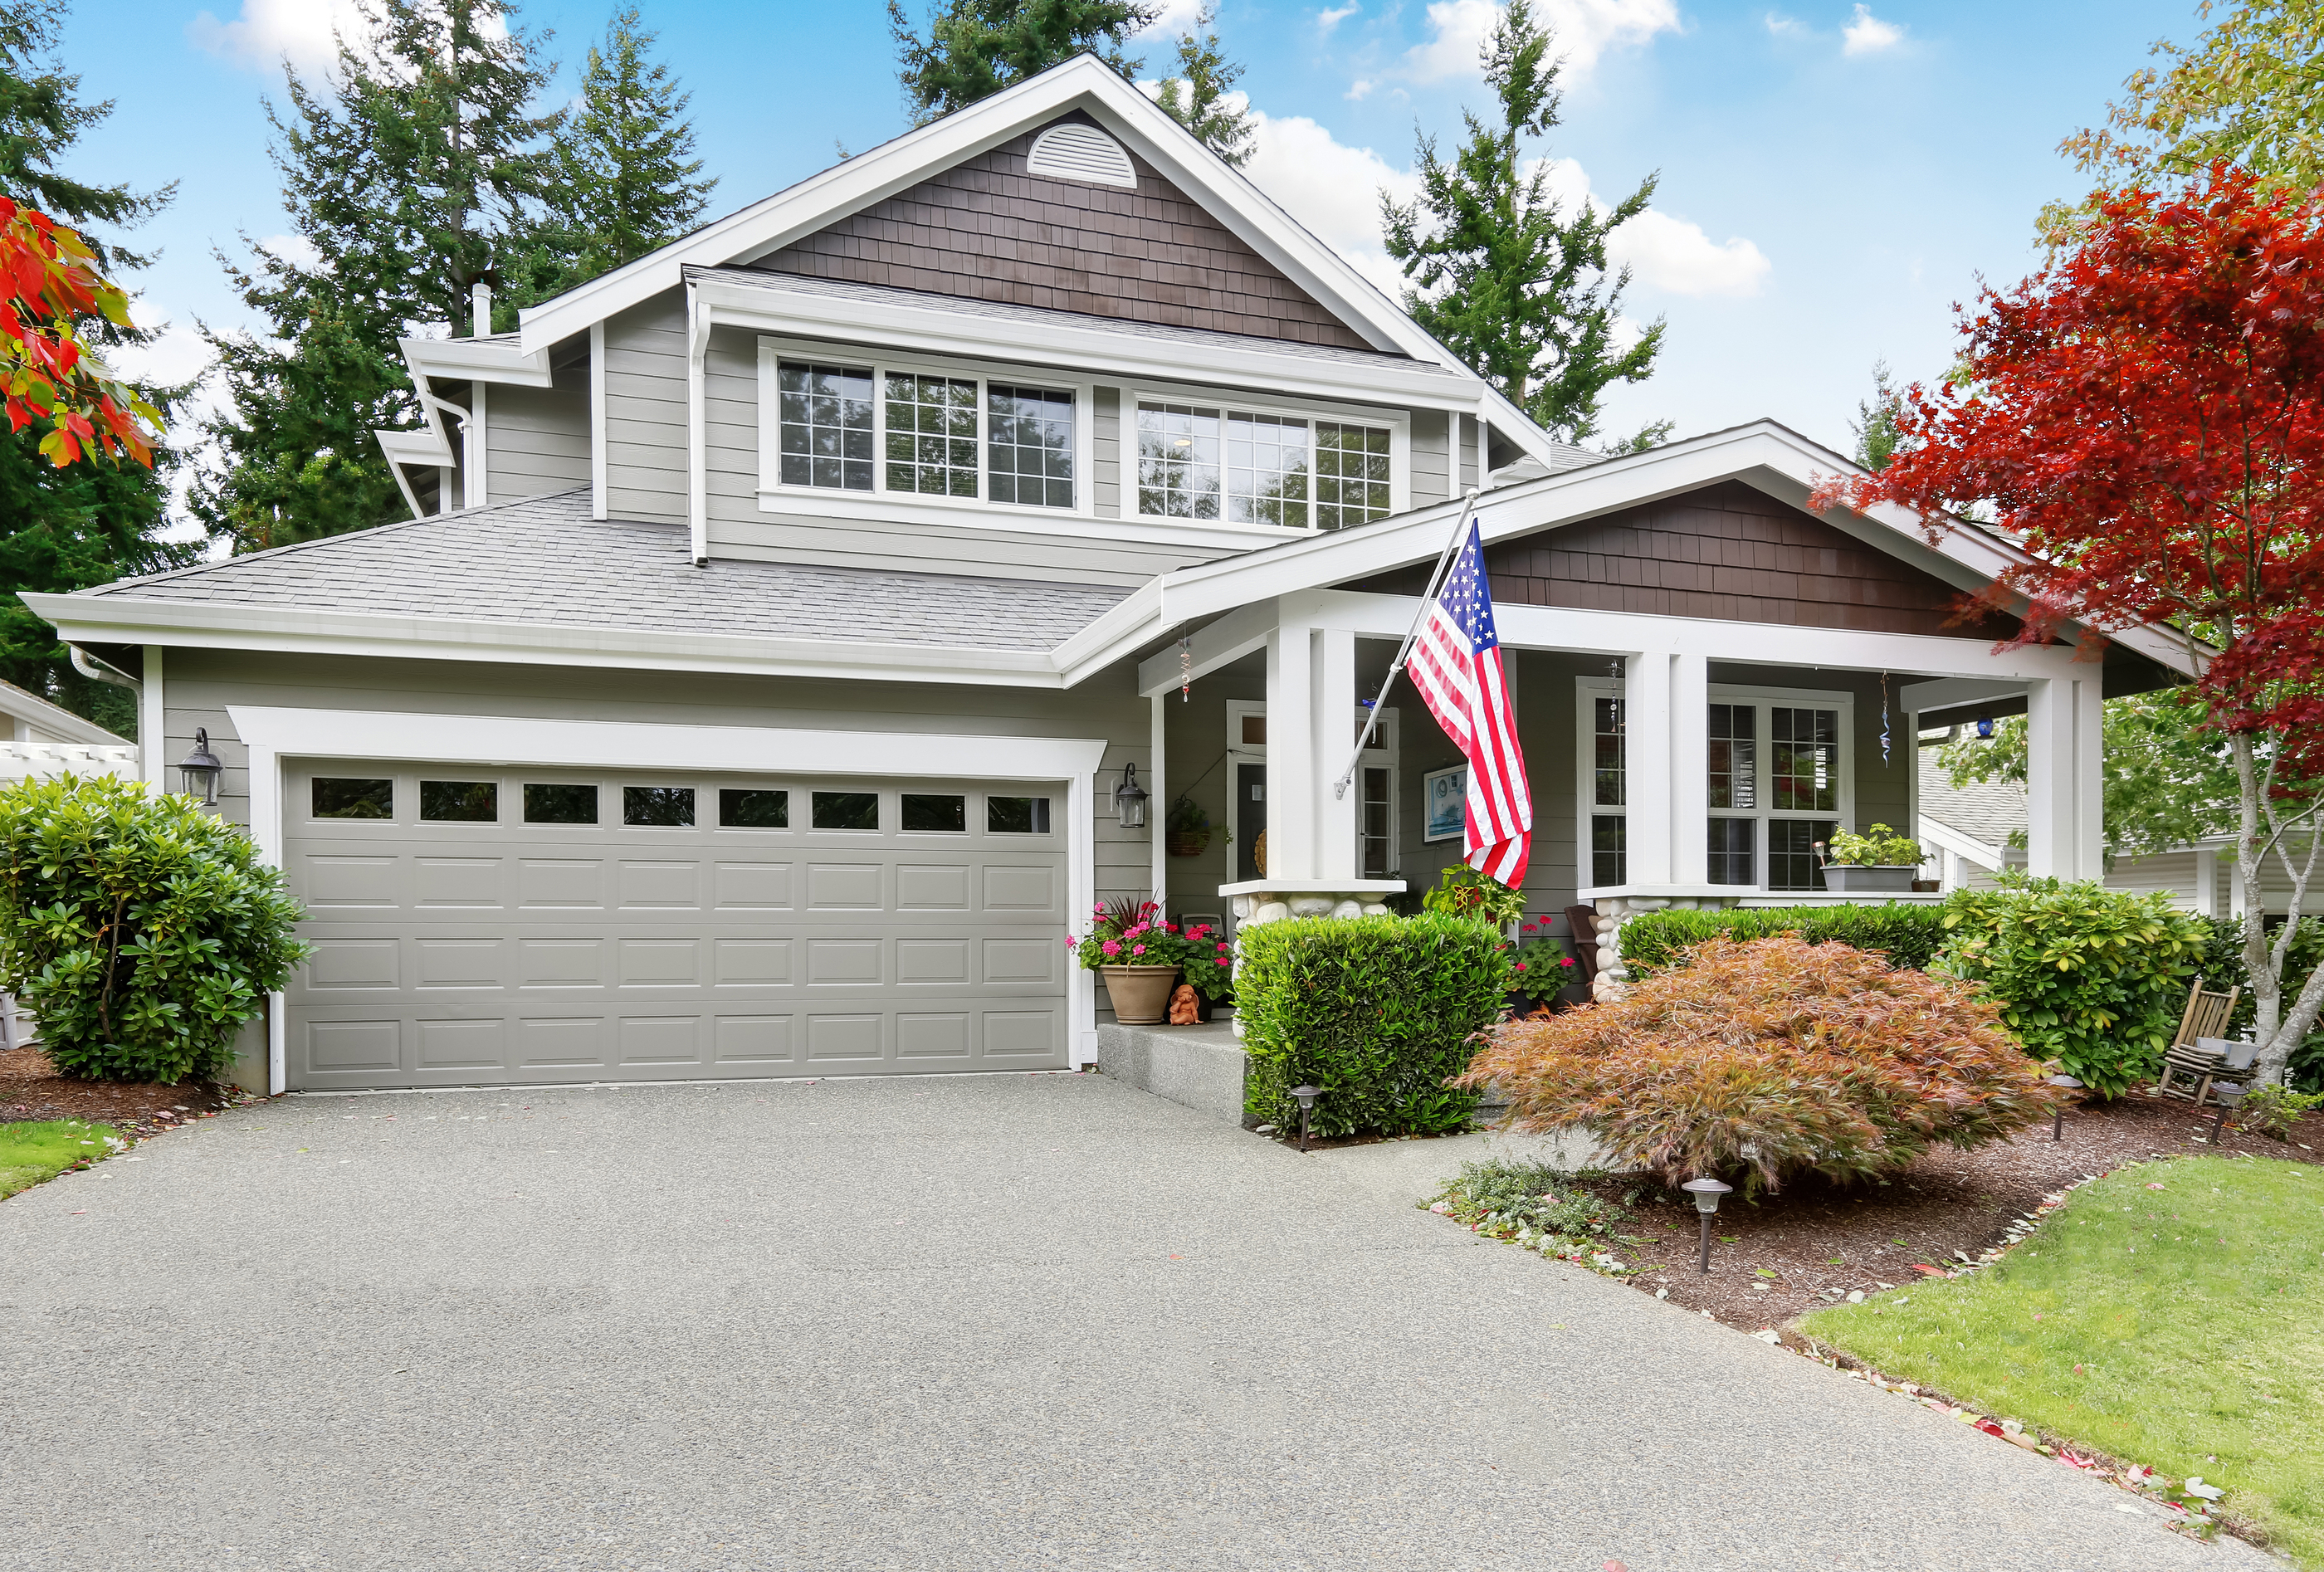 Nice Curb Appeal Of Grey House With Covered Porch And Garage.jpg